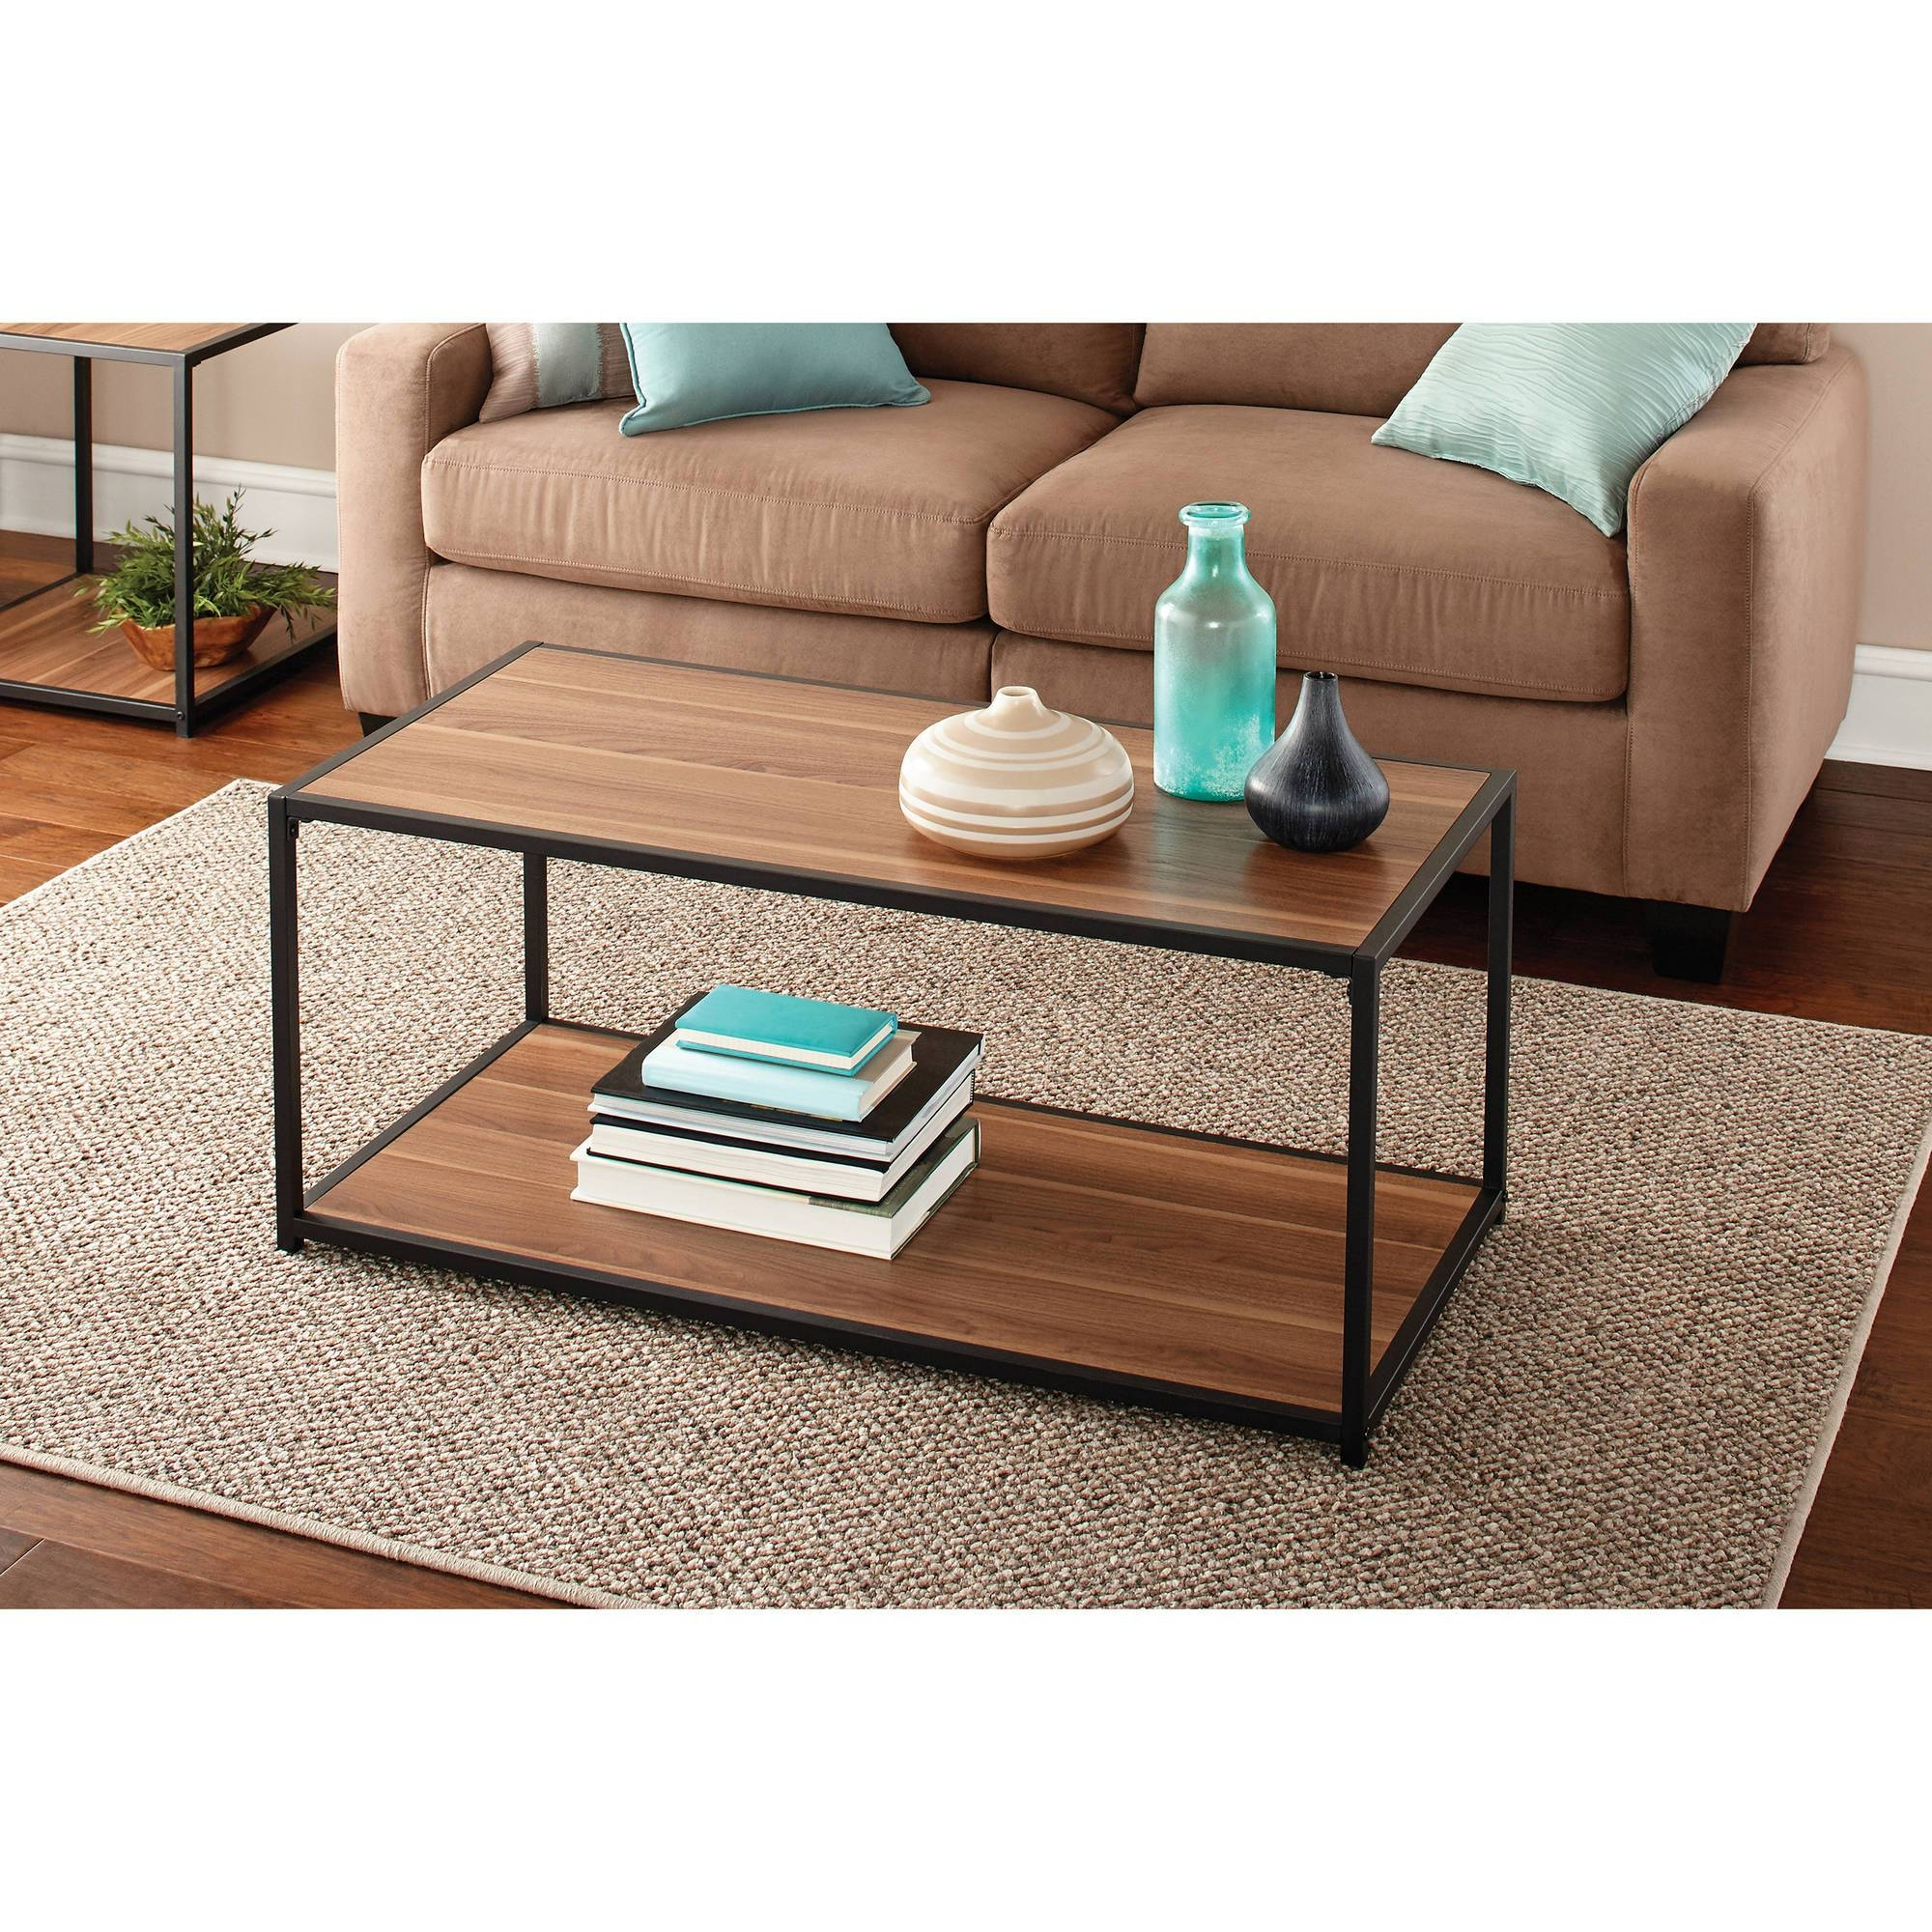 Mainstays Lift-Top Coffee Table, Multiple Colors - Walmart with regard to Coffee Tables With Raisable Top (Image 20 of 30)